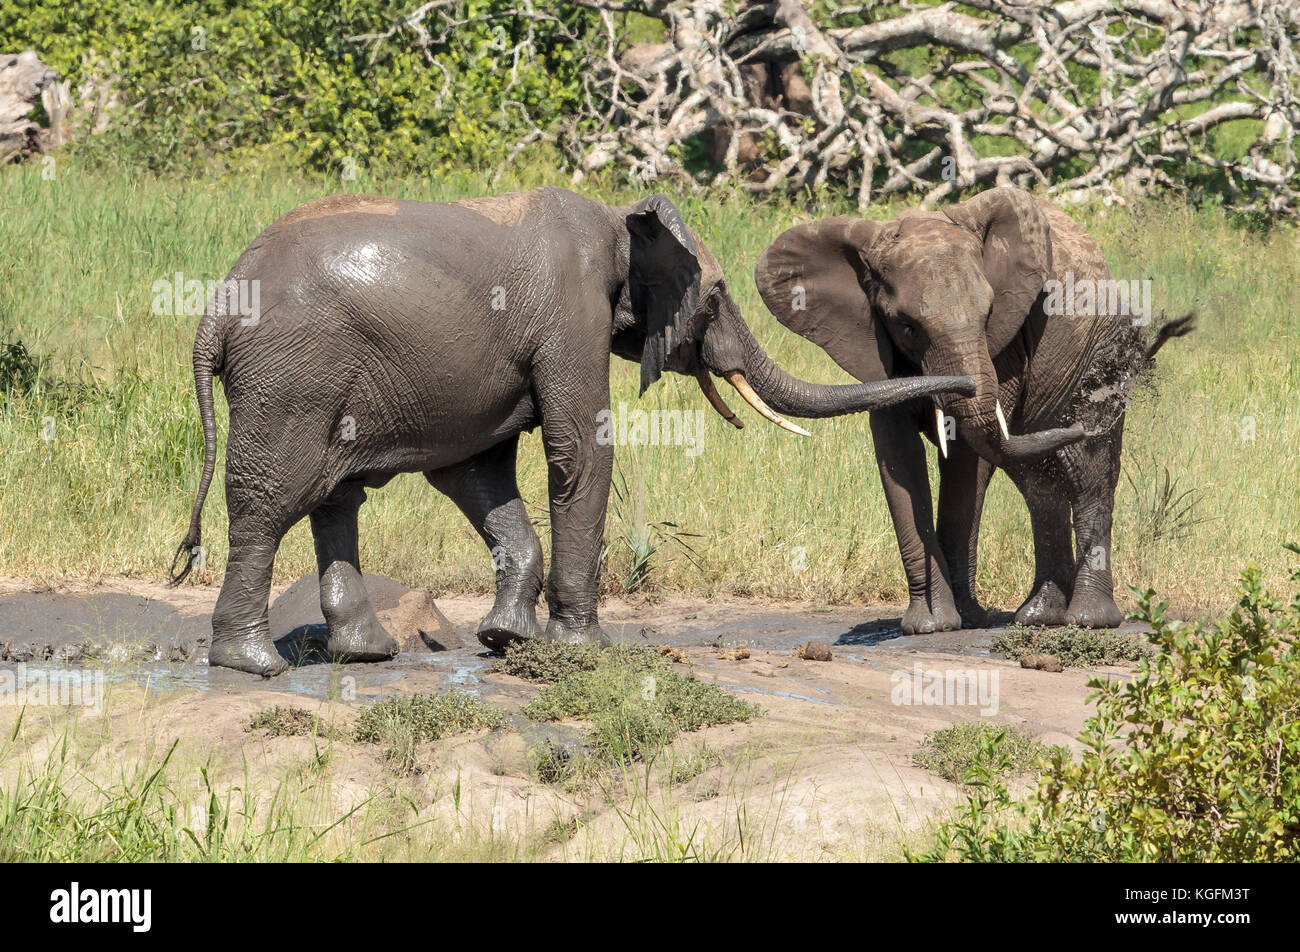 African Elephants wallowing in the mud - Stock Image